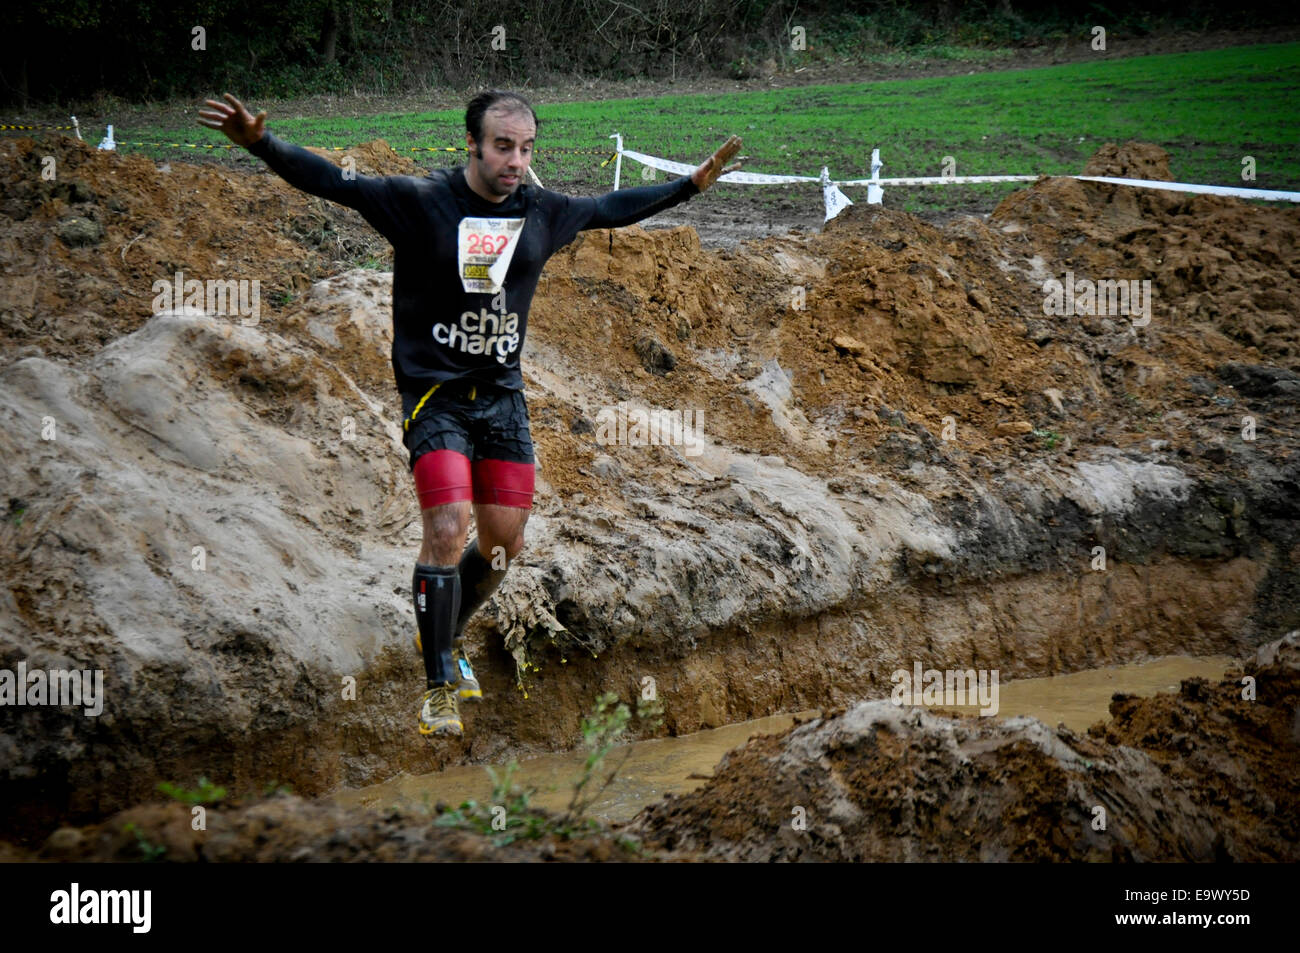 Participants battle against obstacles and mud in the 2014 Nuclear Races 'Fallout' event - Stock Image